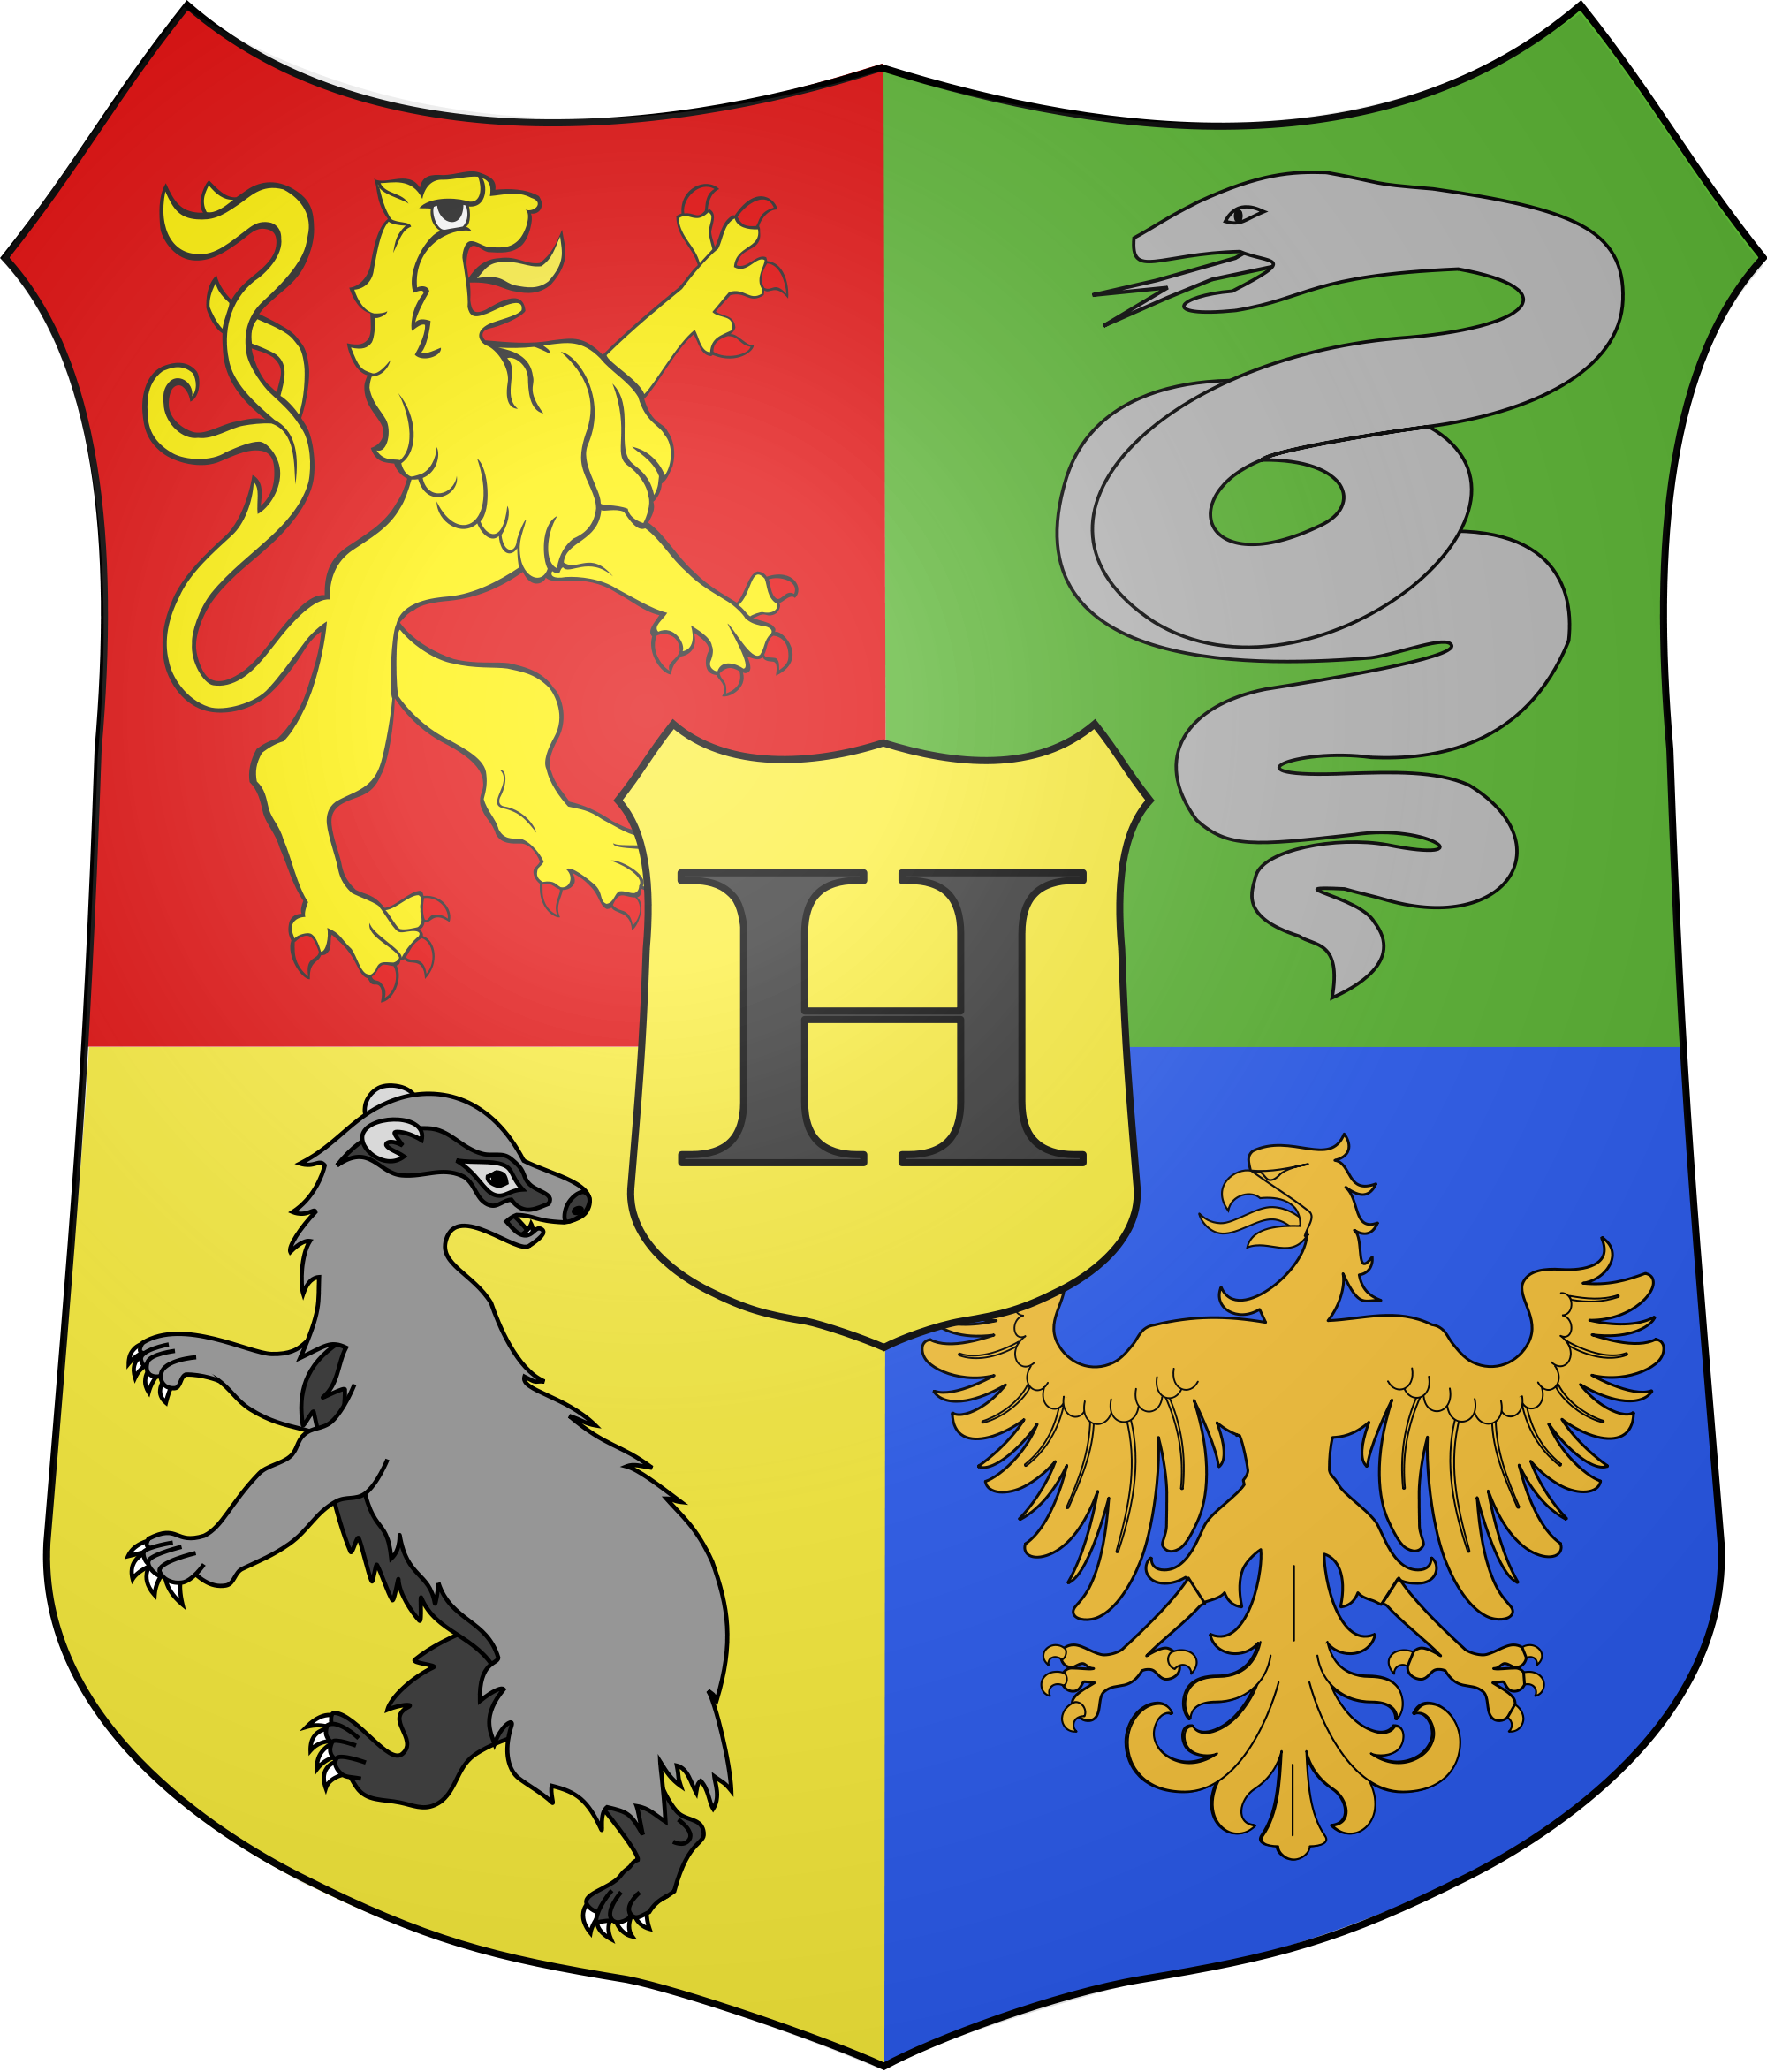 Harry potter crest png. File coat of arms